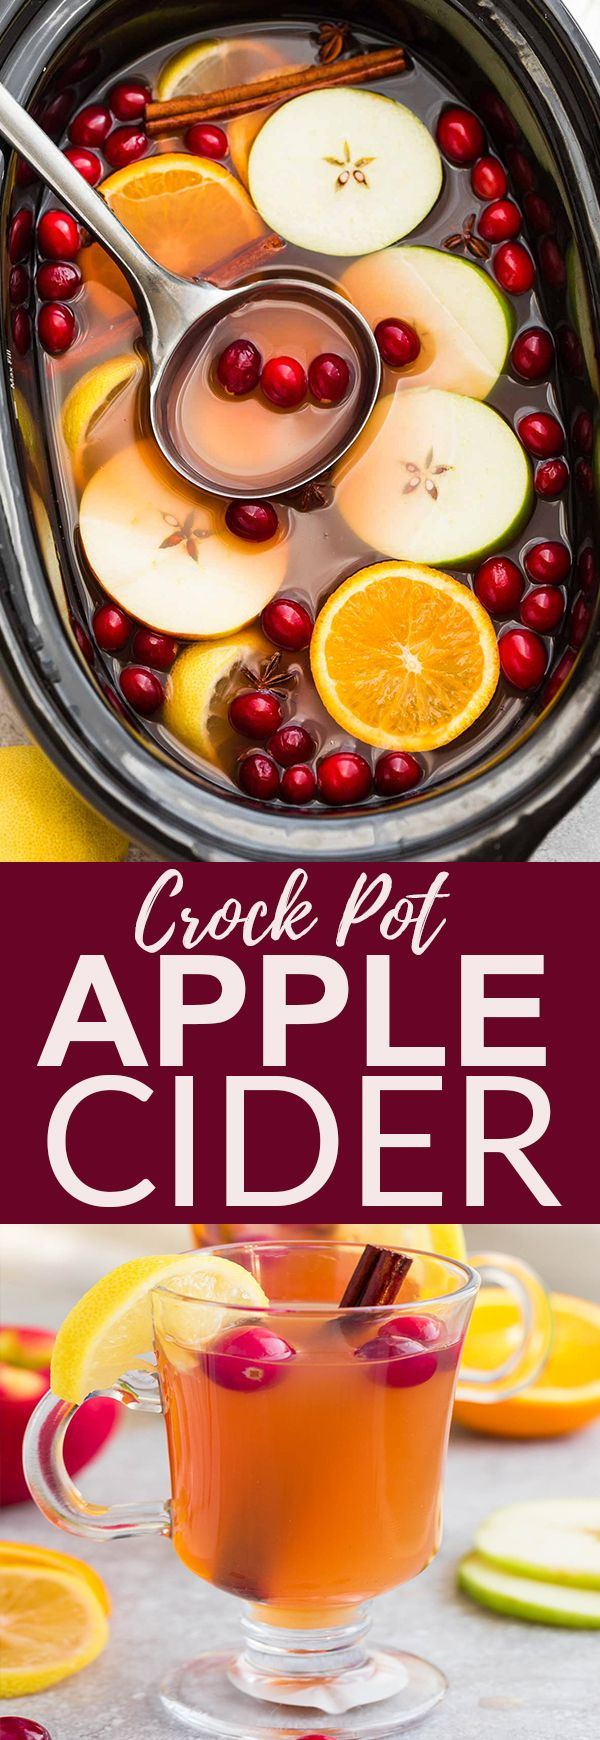 This Crock Pot Apple Cider Recipe is the perfect comforting drink for fall and the holiday Christmas season. Best of all, this homemade favorite is made entirely from scratch in the slow cooker with apples, orange, lemon, cranberries, cinnamon and cloves. (thanksgiving deserts apple)